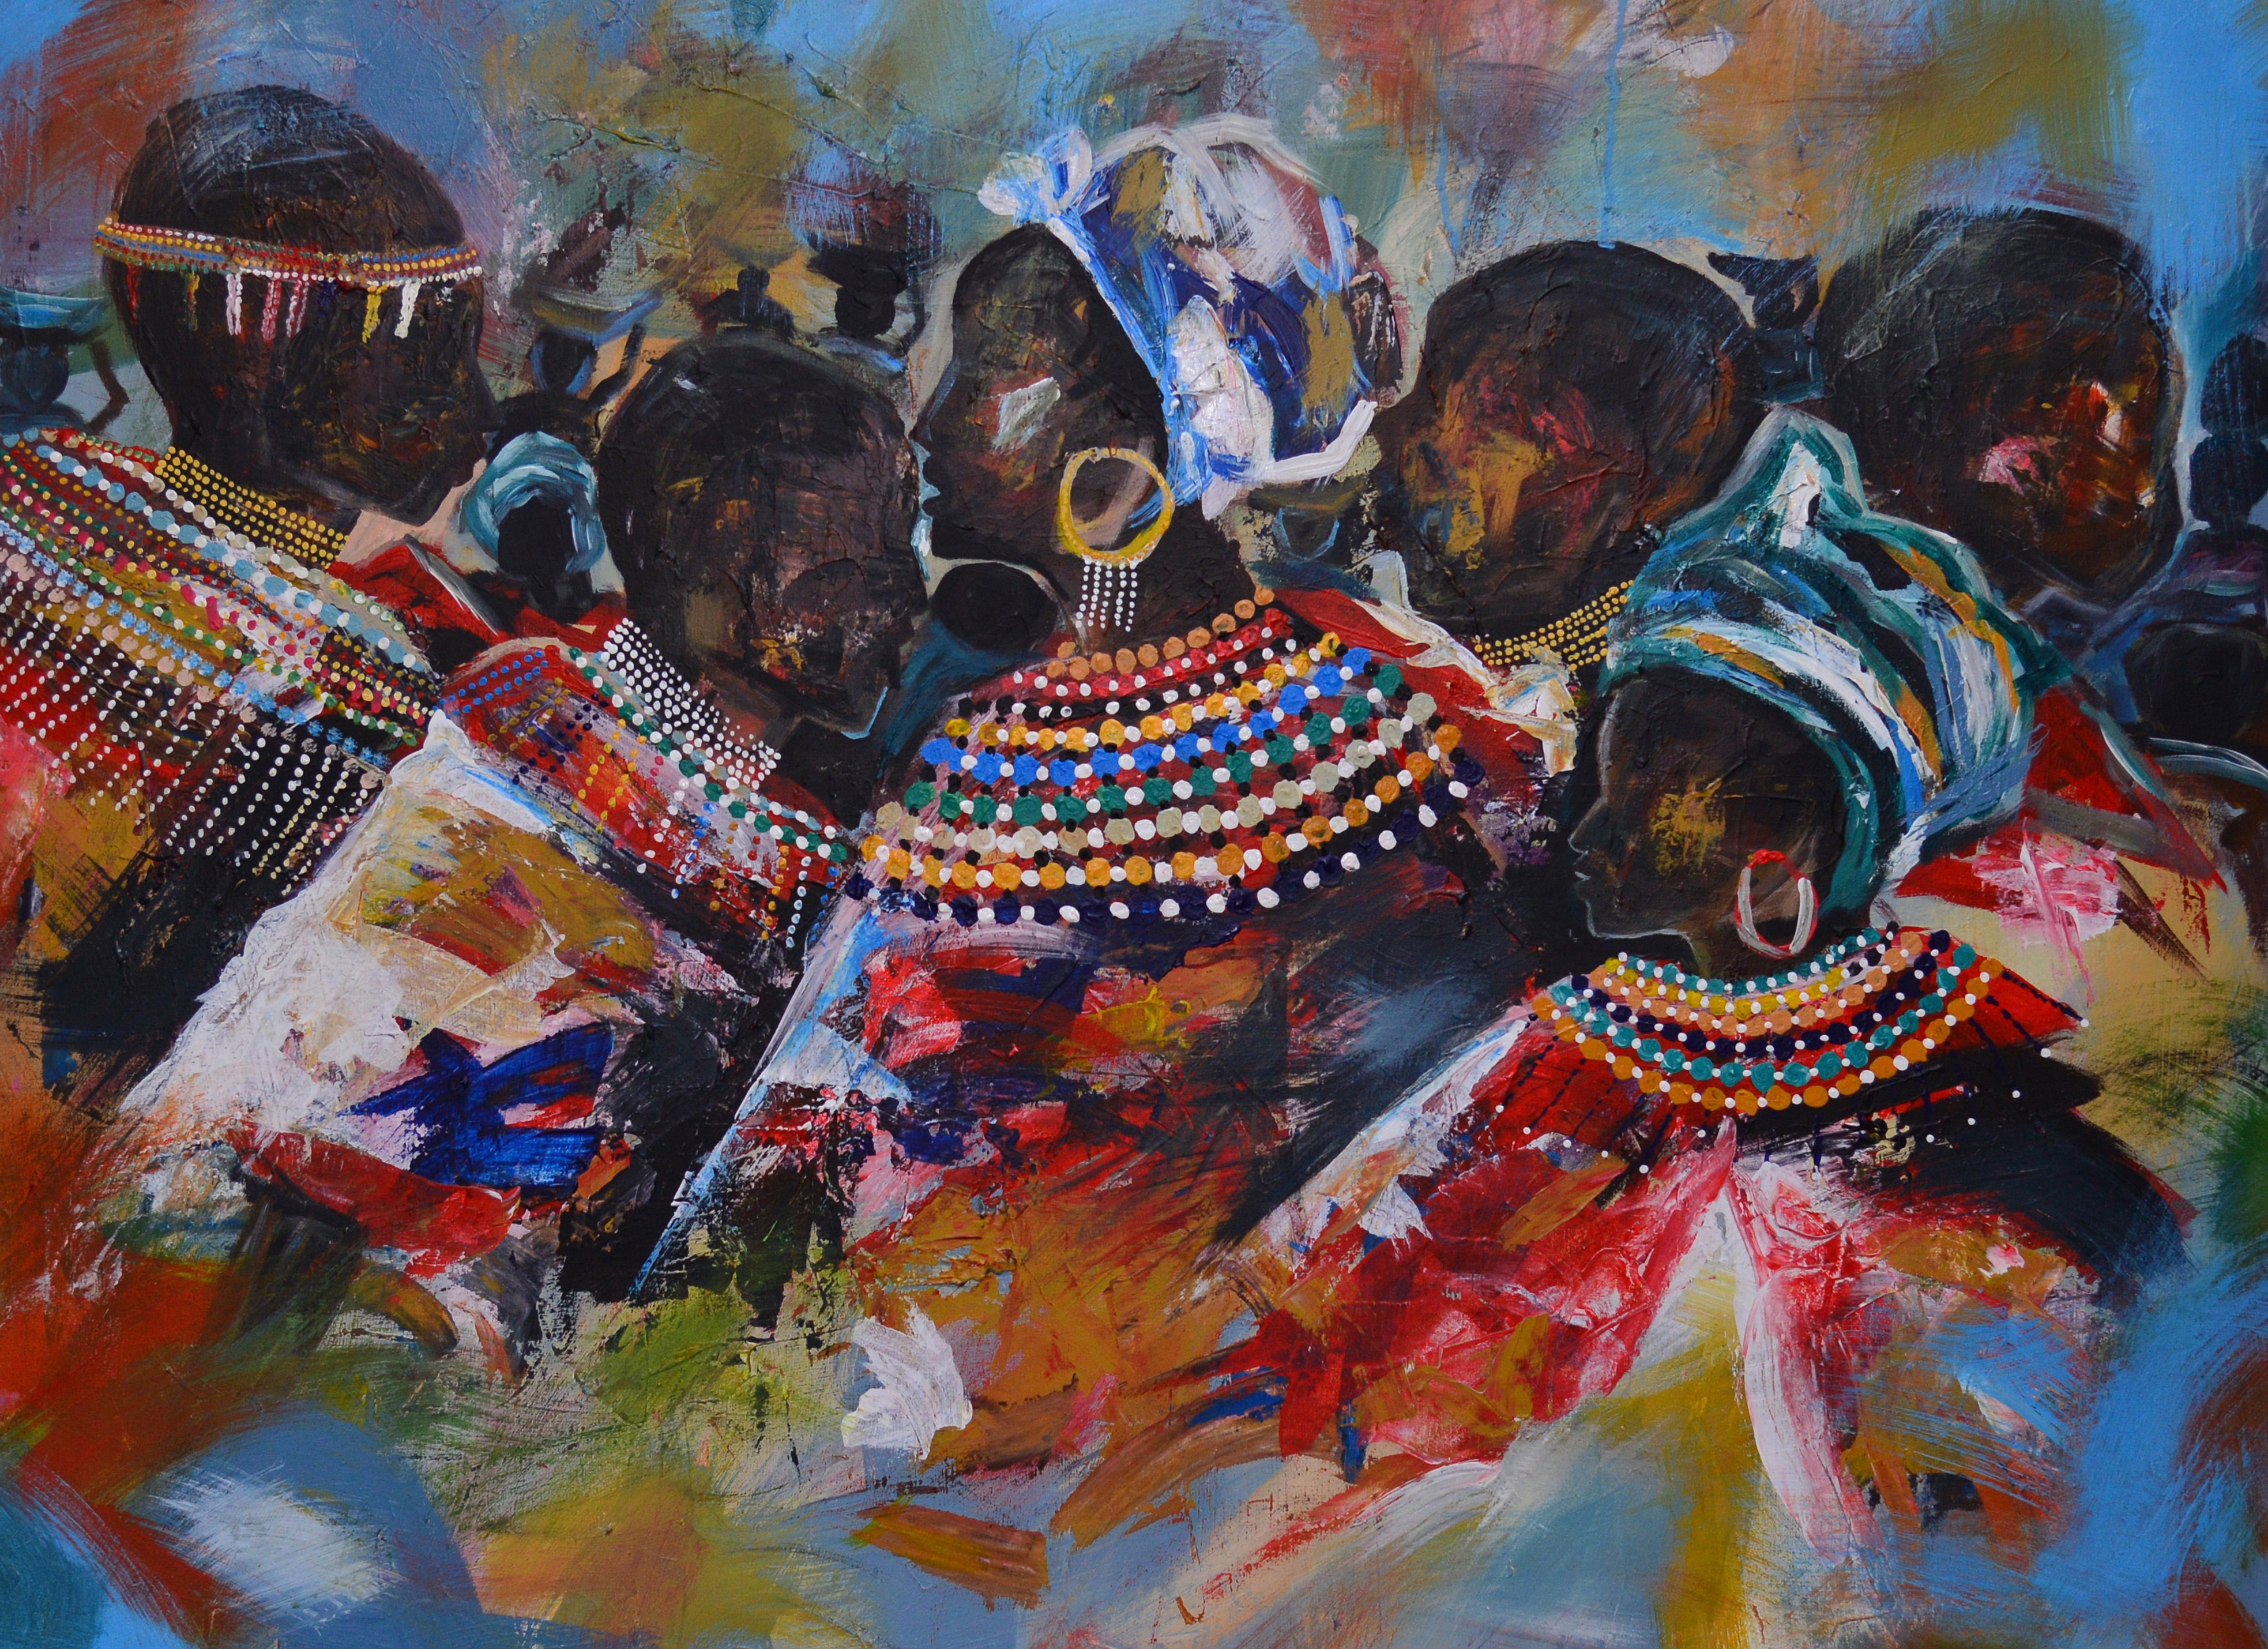 One of the works by Ganza Odart, Rwandan artist, featuring the forms of African women